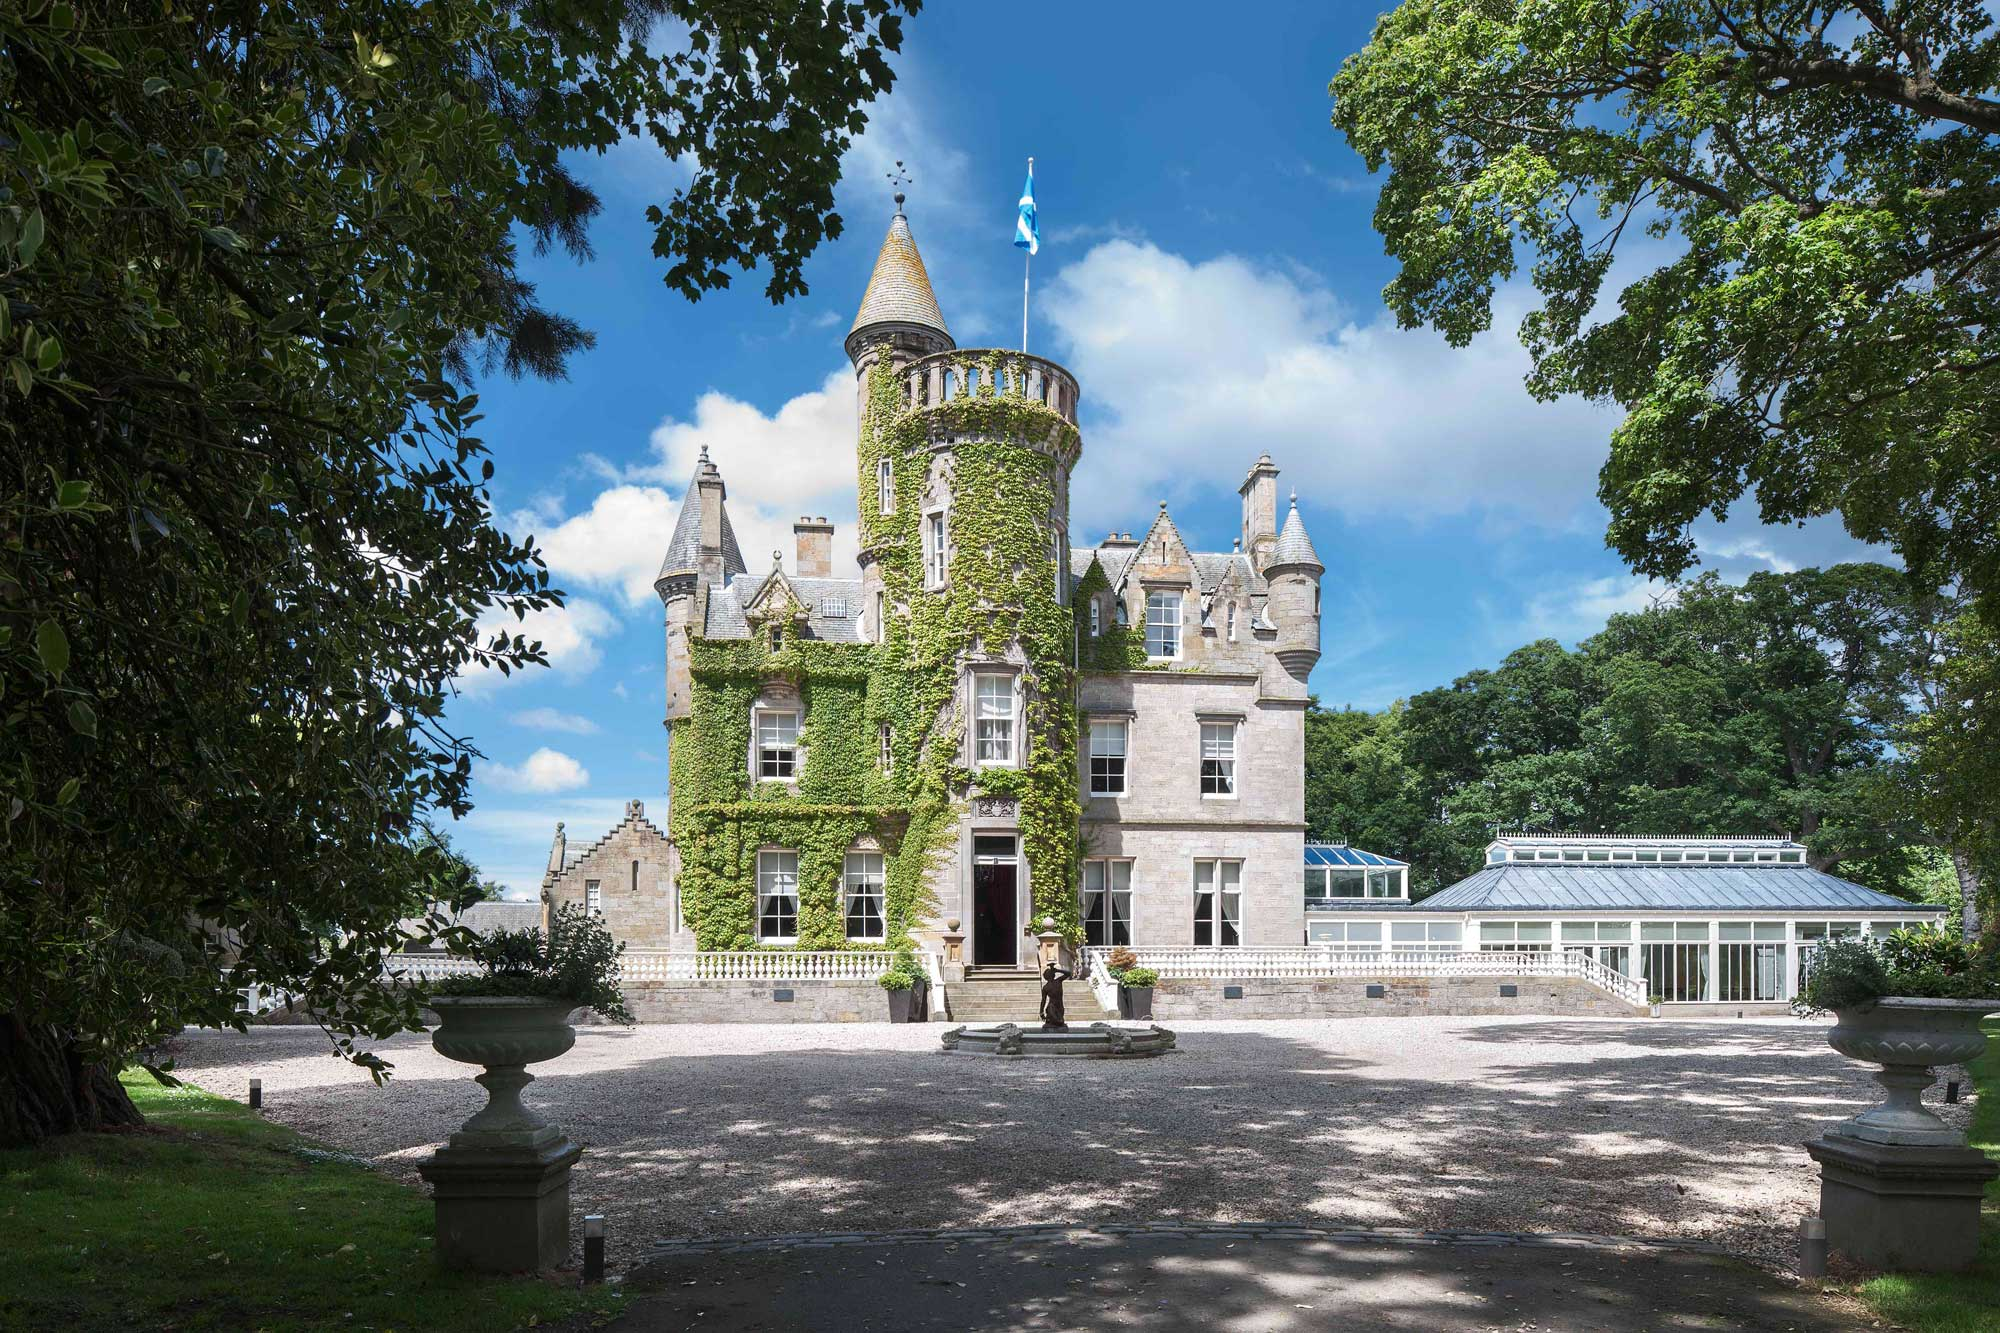 carlowrie castle - luxurious hotel castle accommodation in